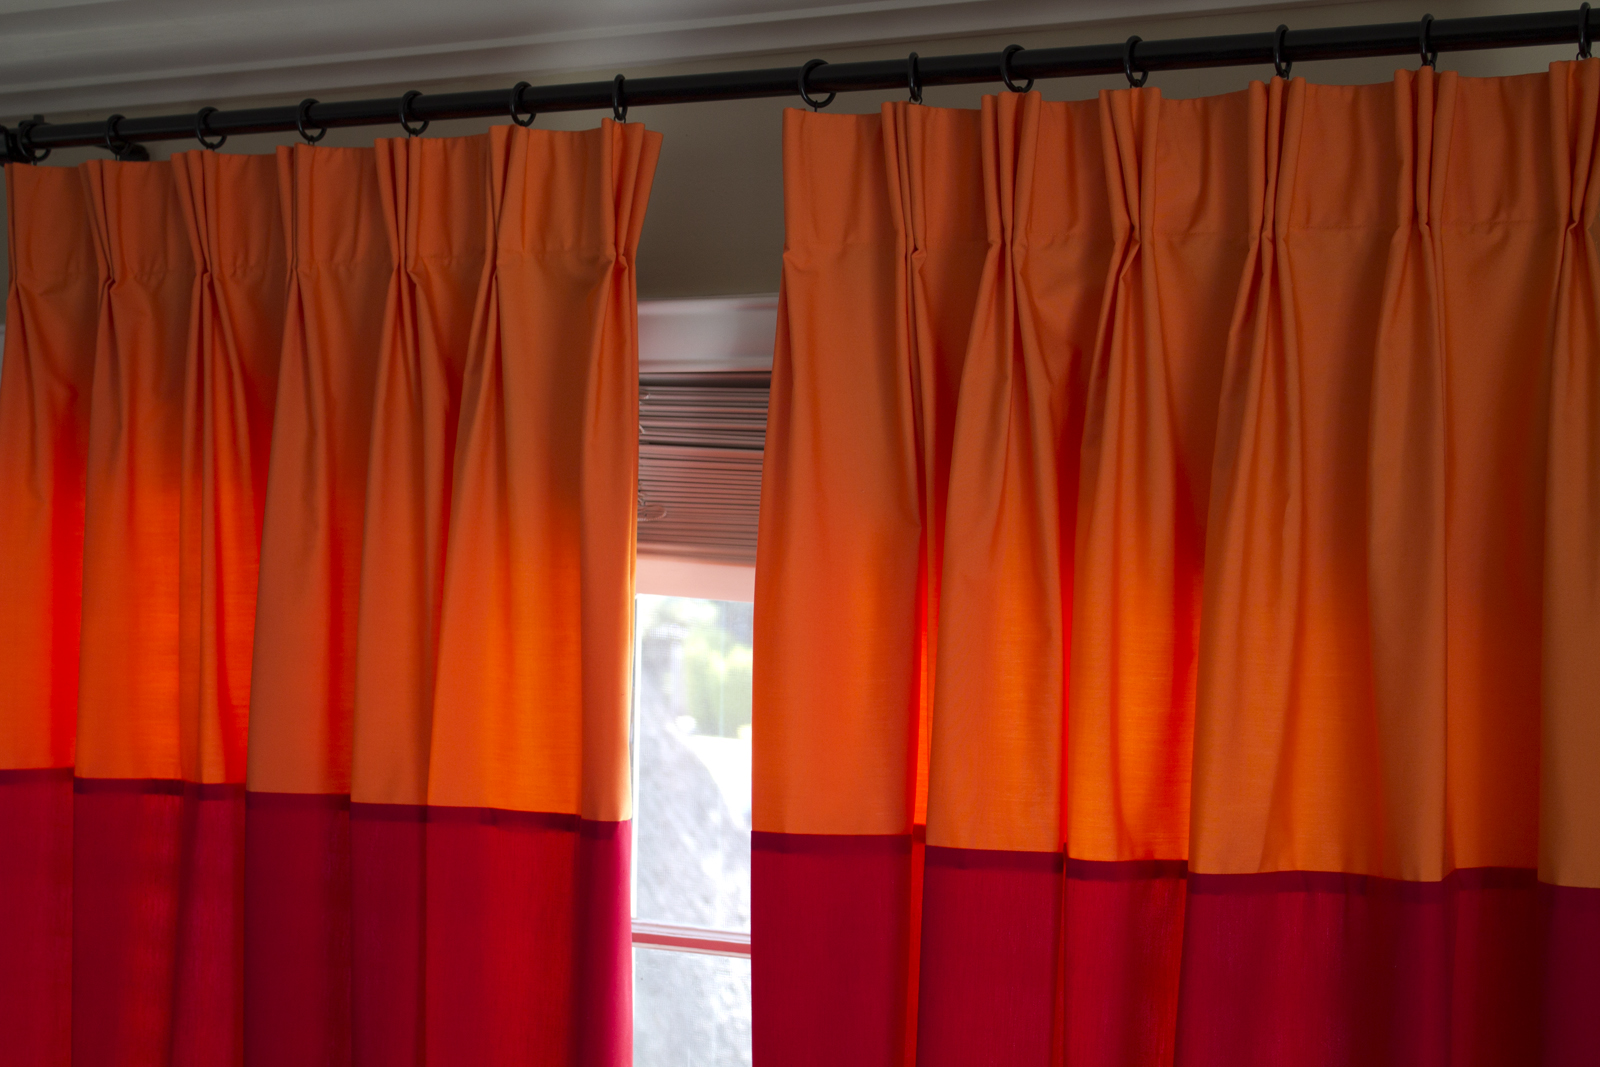 Diy Ripplefold Curtains Pinch Pleat Versus Ripple Fold Drapery With Pictures Ehow